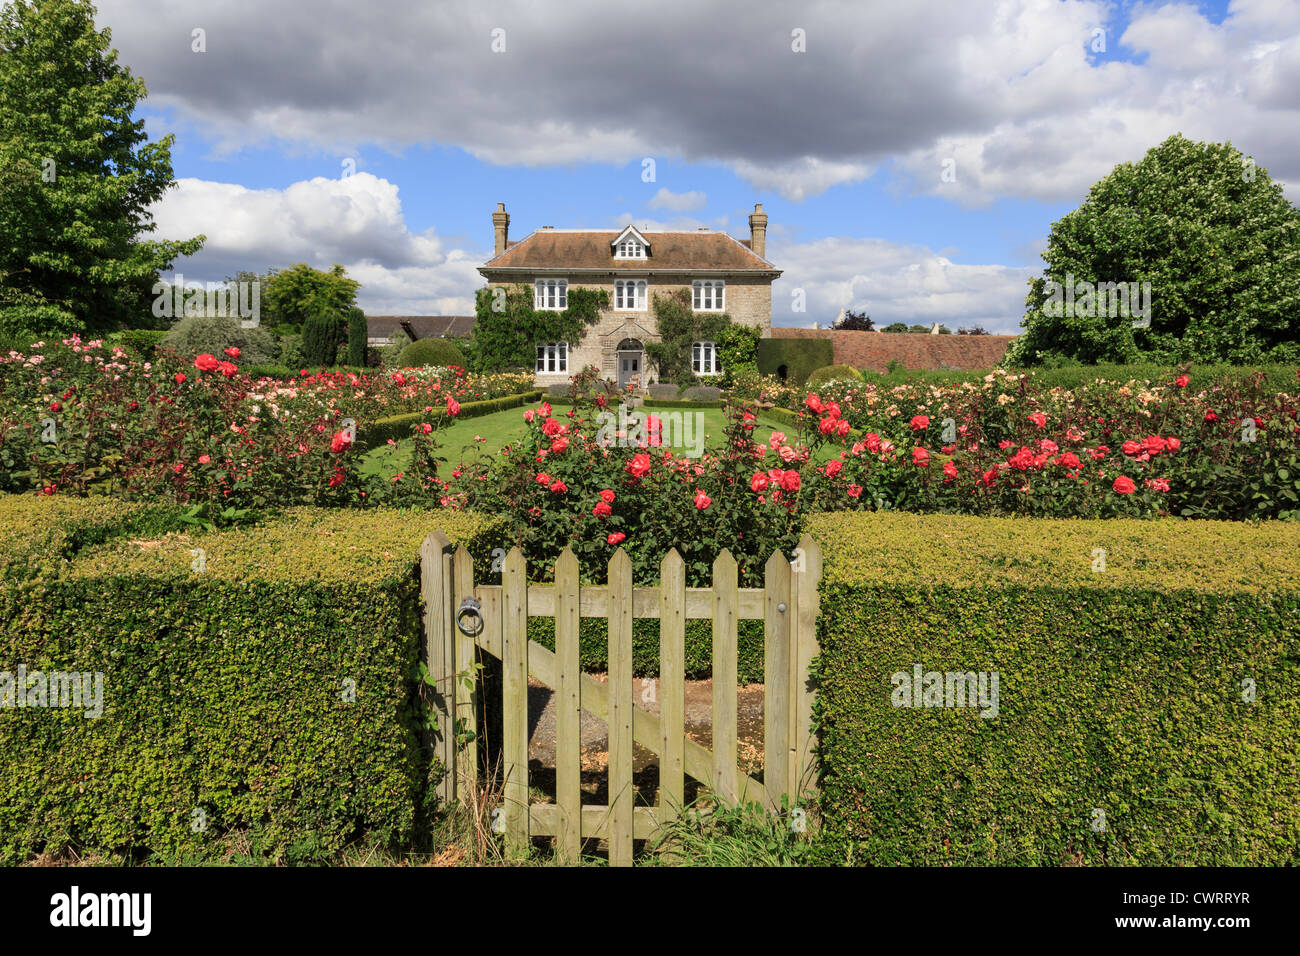 Hedge With Gate To Rose Garden In Front Of A 19C English Country House Summer Pluckley Near Ashford Kent England UK